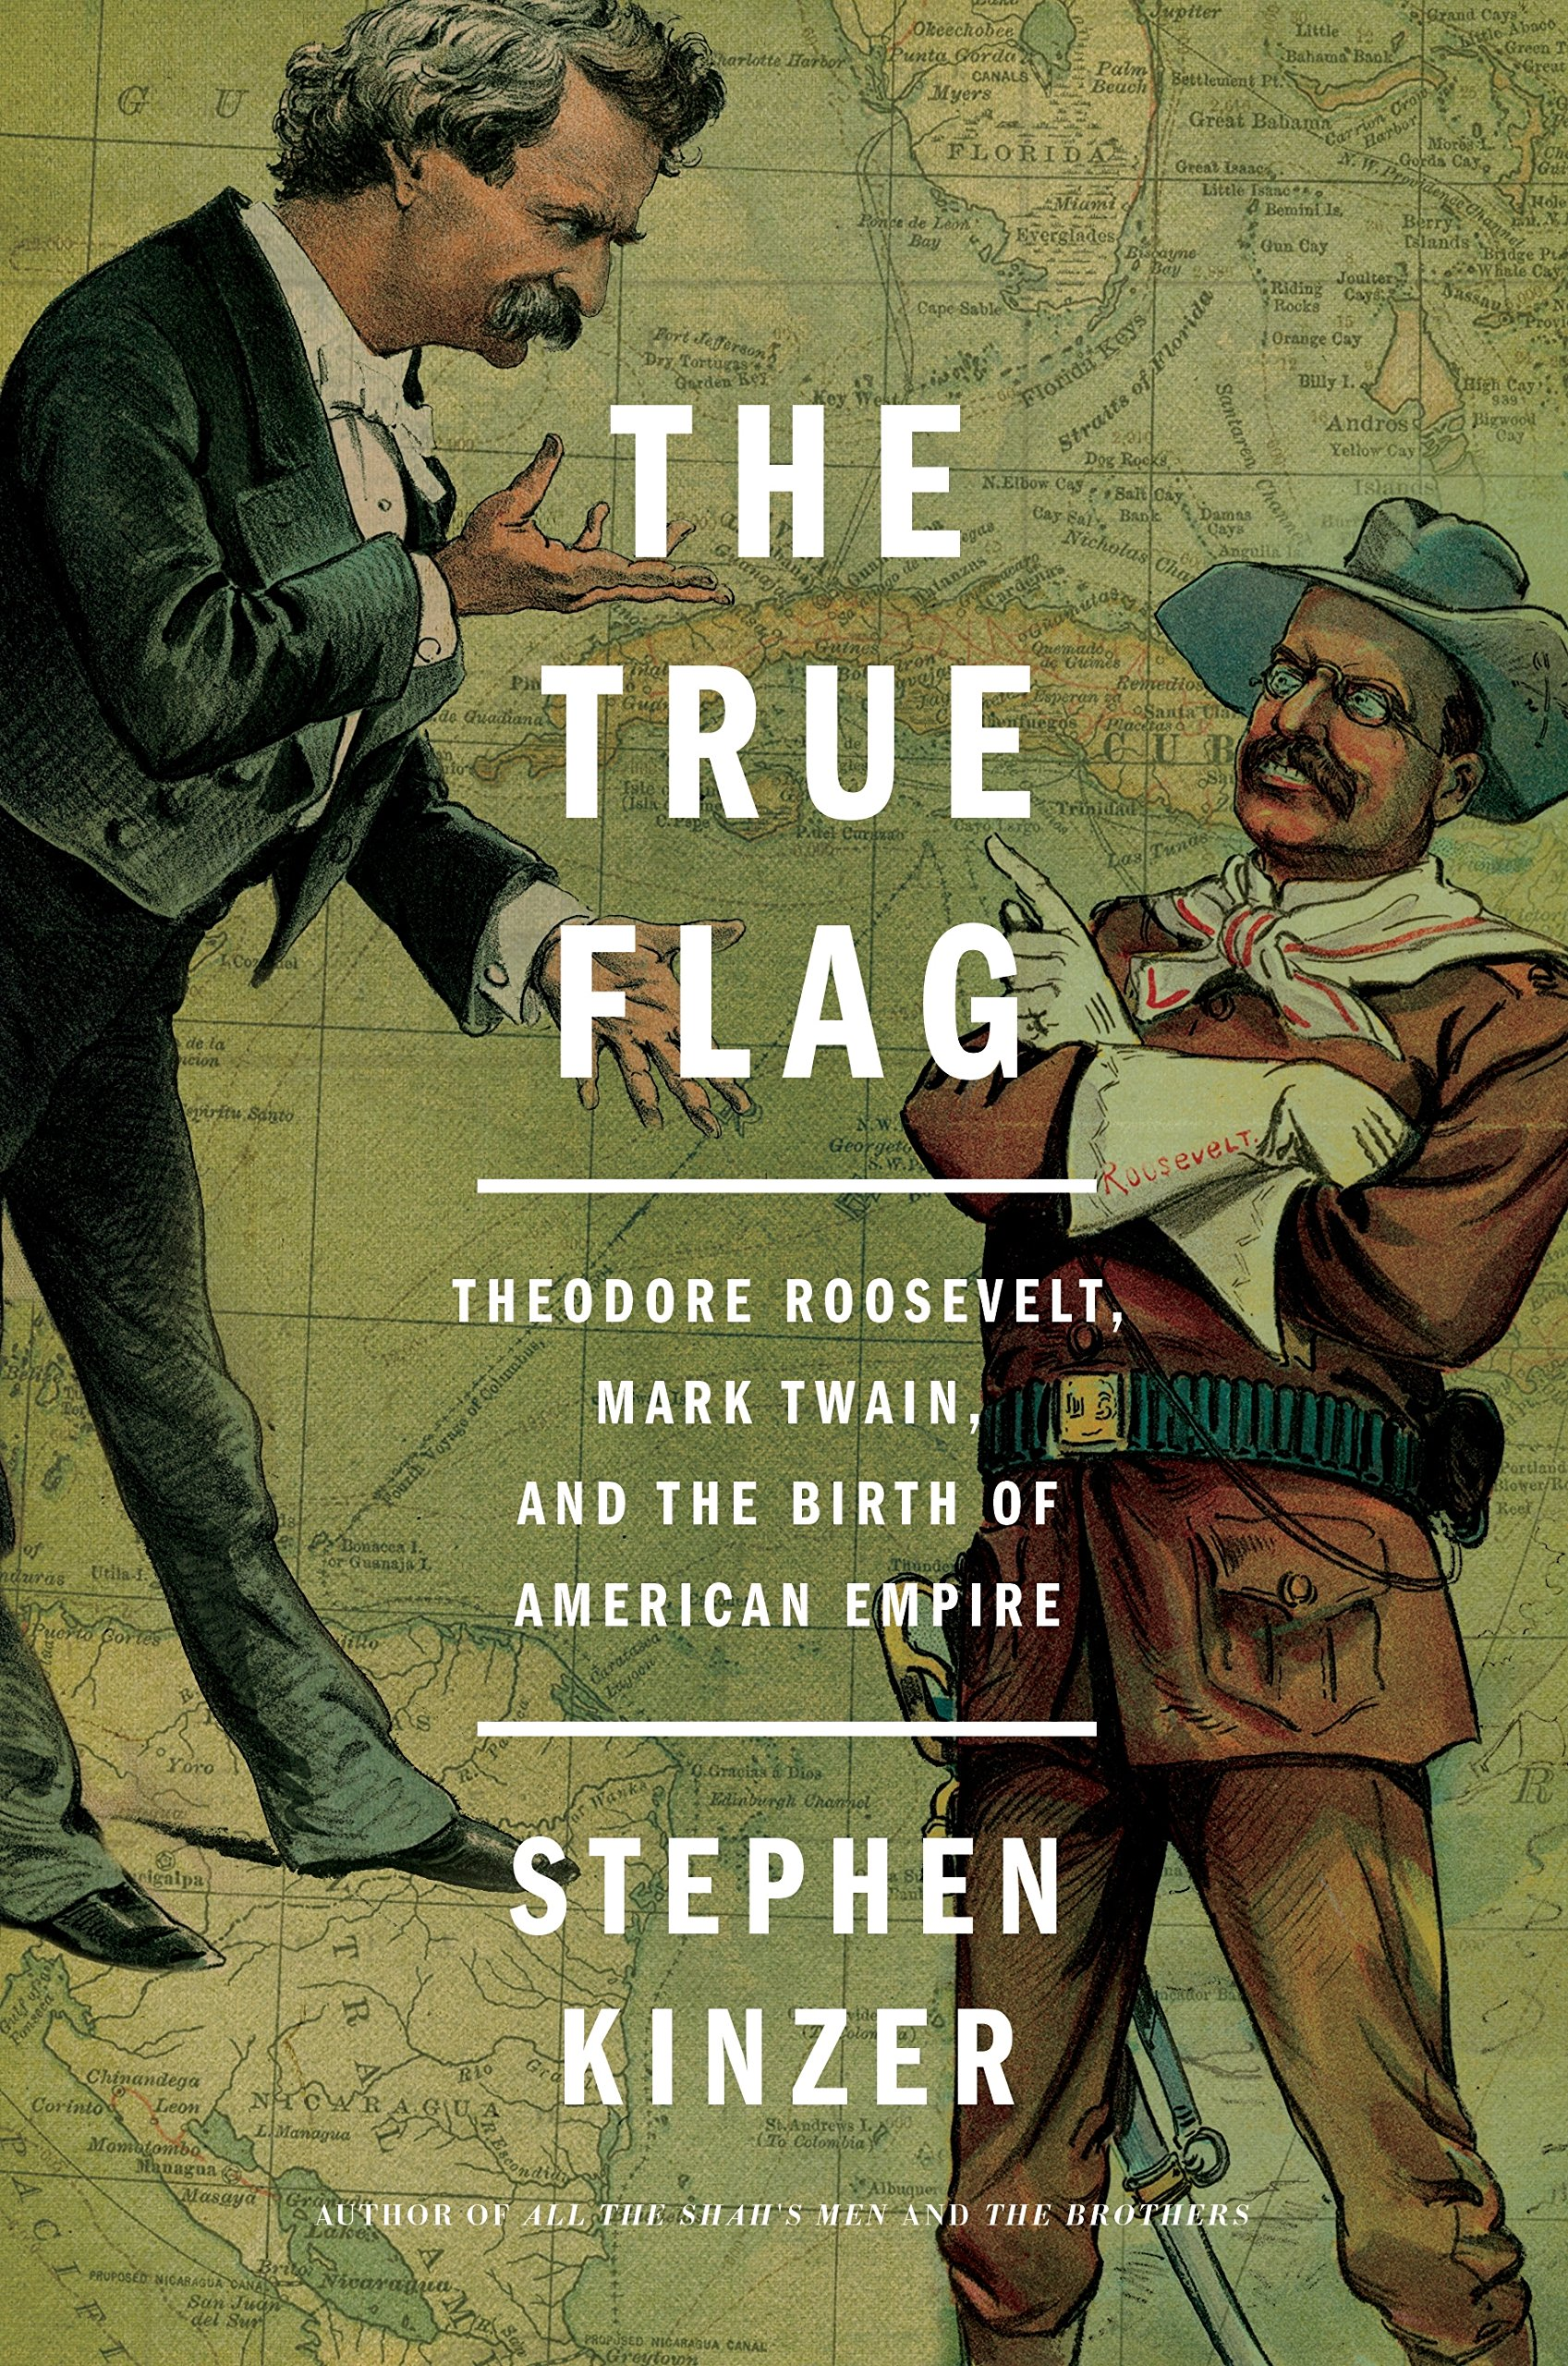 Image result for the true flag by stephen kinzer